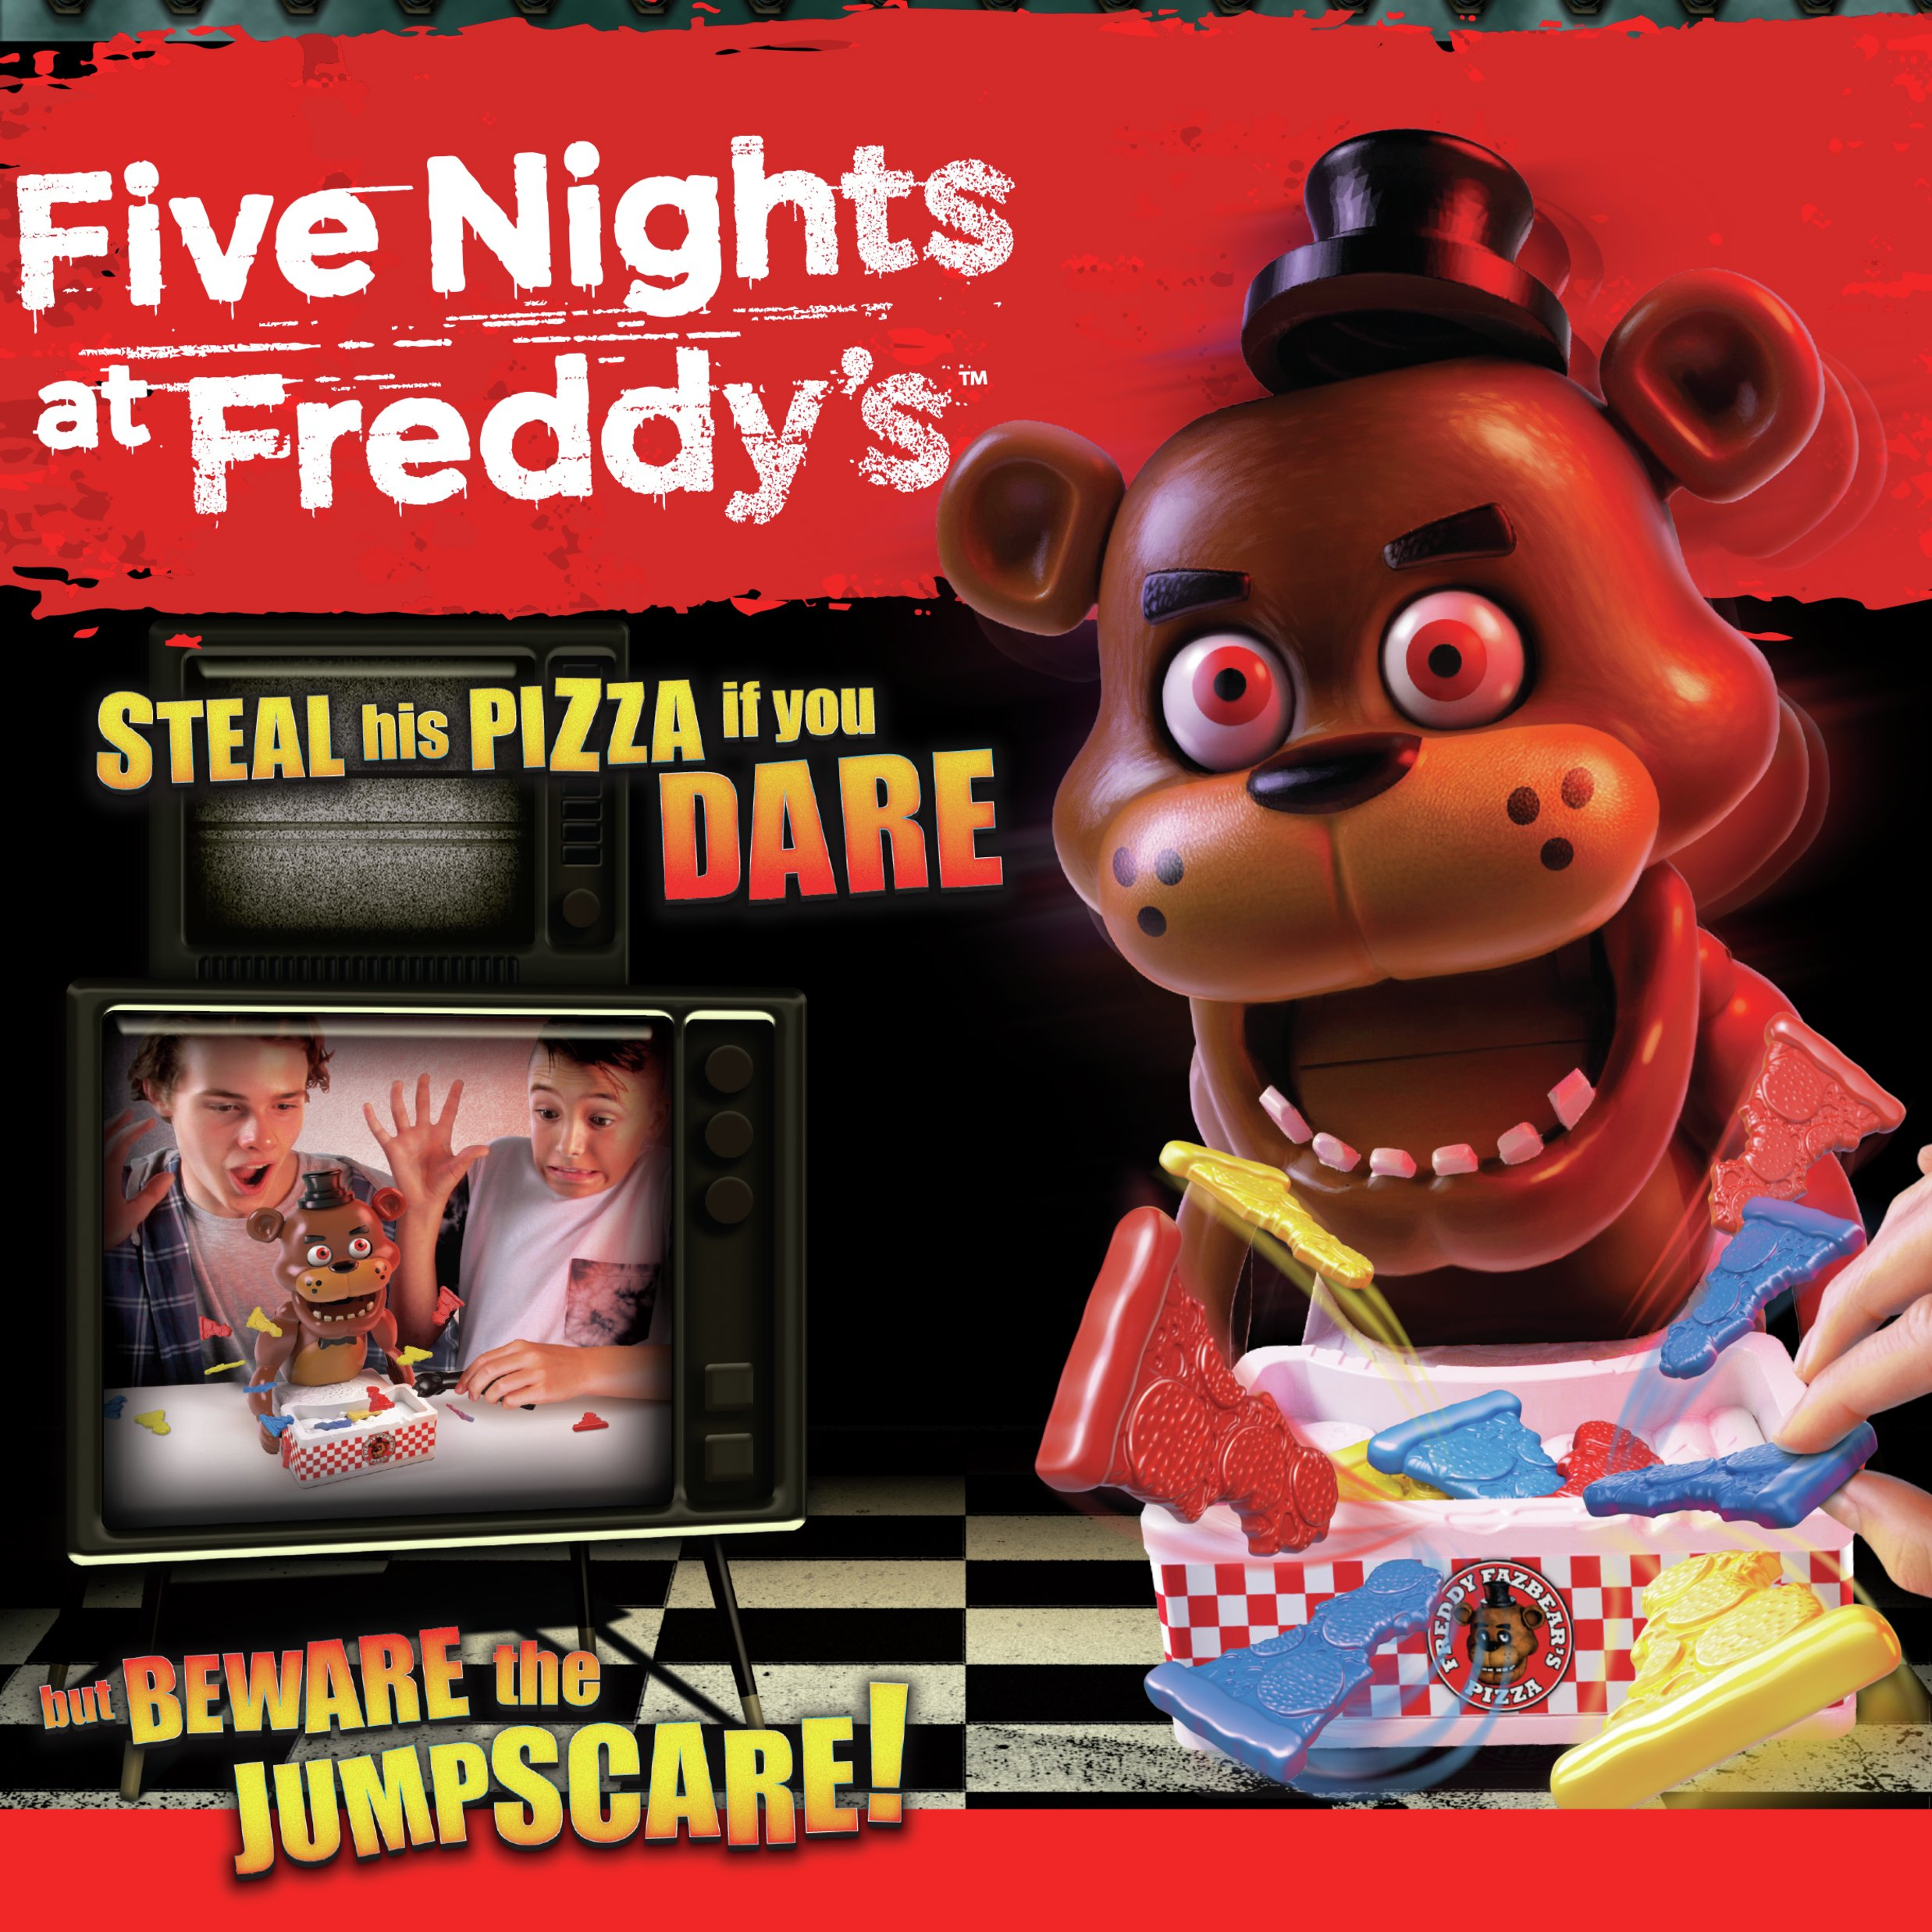 Image of Five Nights at Freddy's Jumpscare Game.